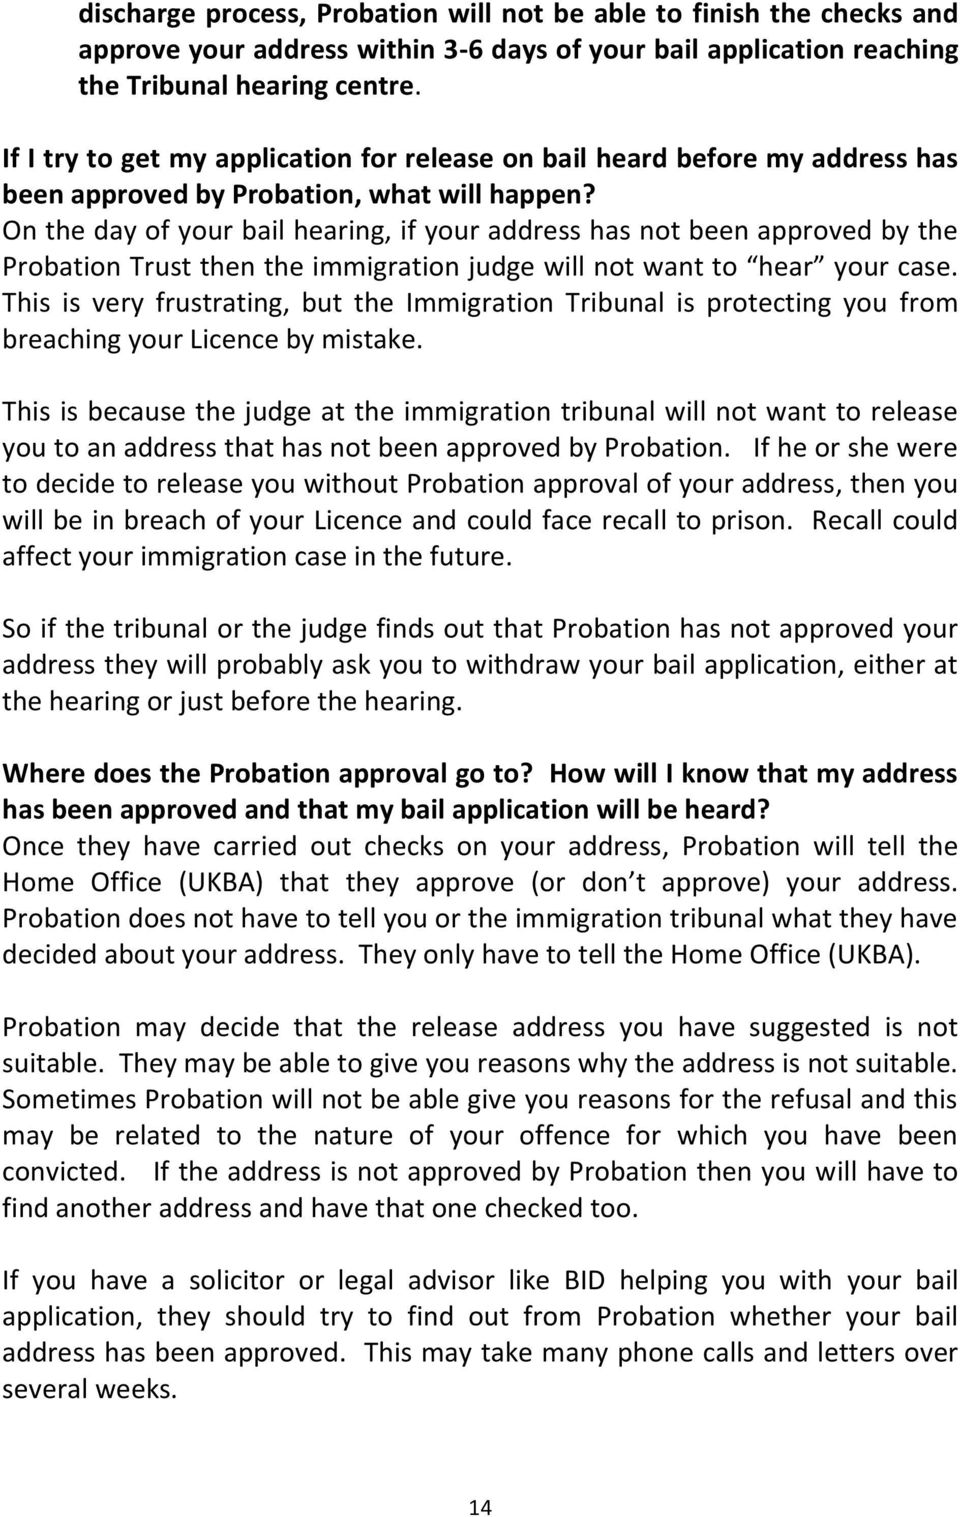 On the day of your bail hearing, if your address has not been approved by the Probation Trust then the immigration judge will not want to hear your case.